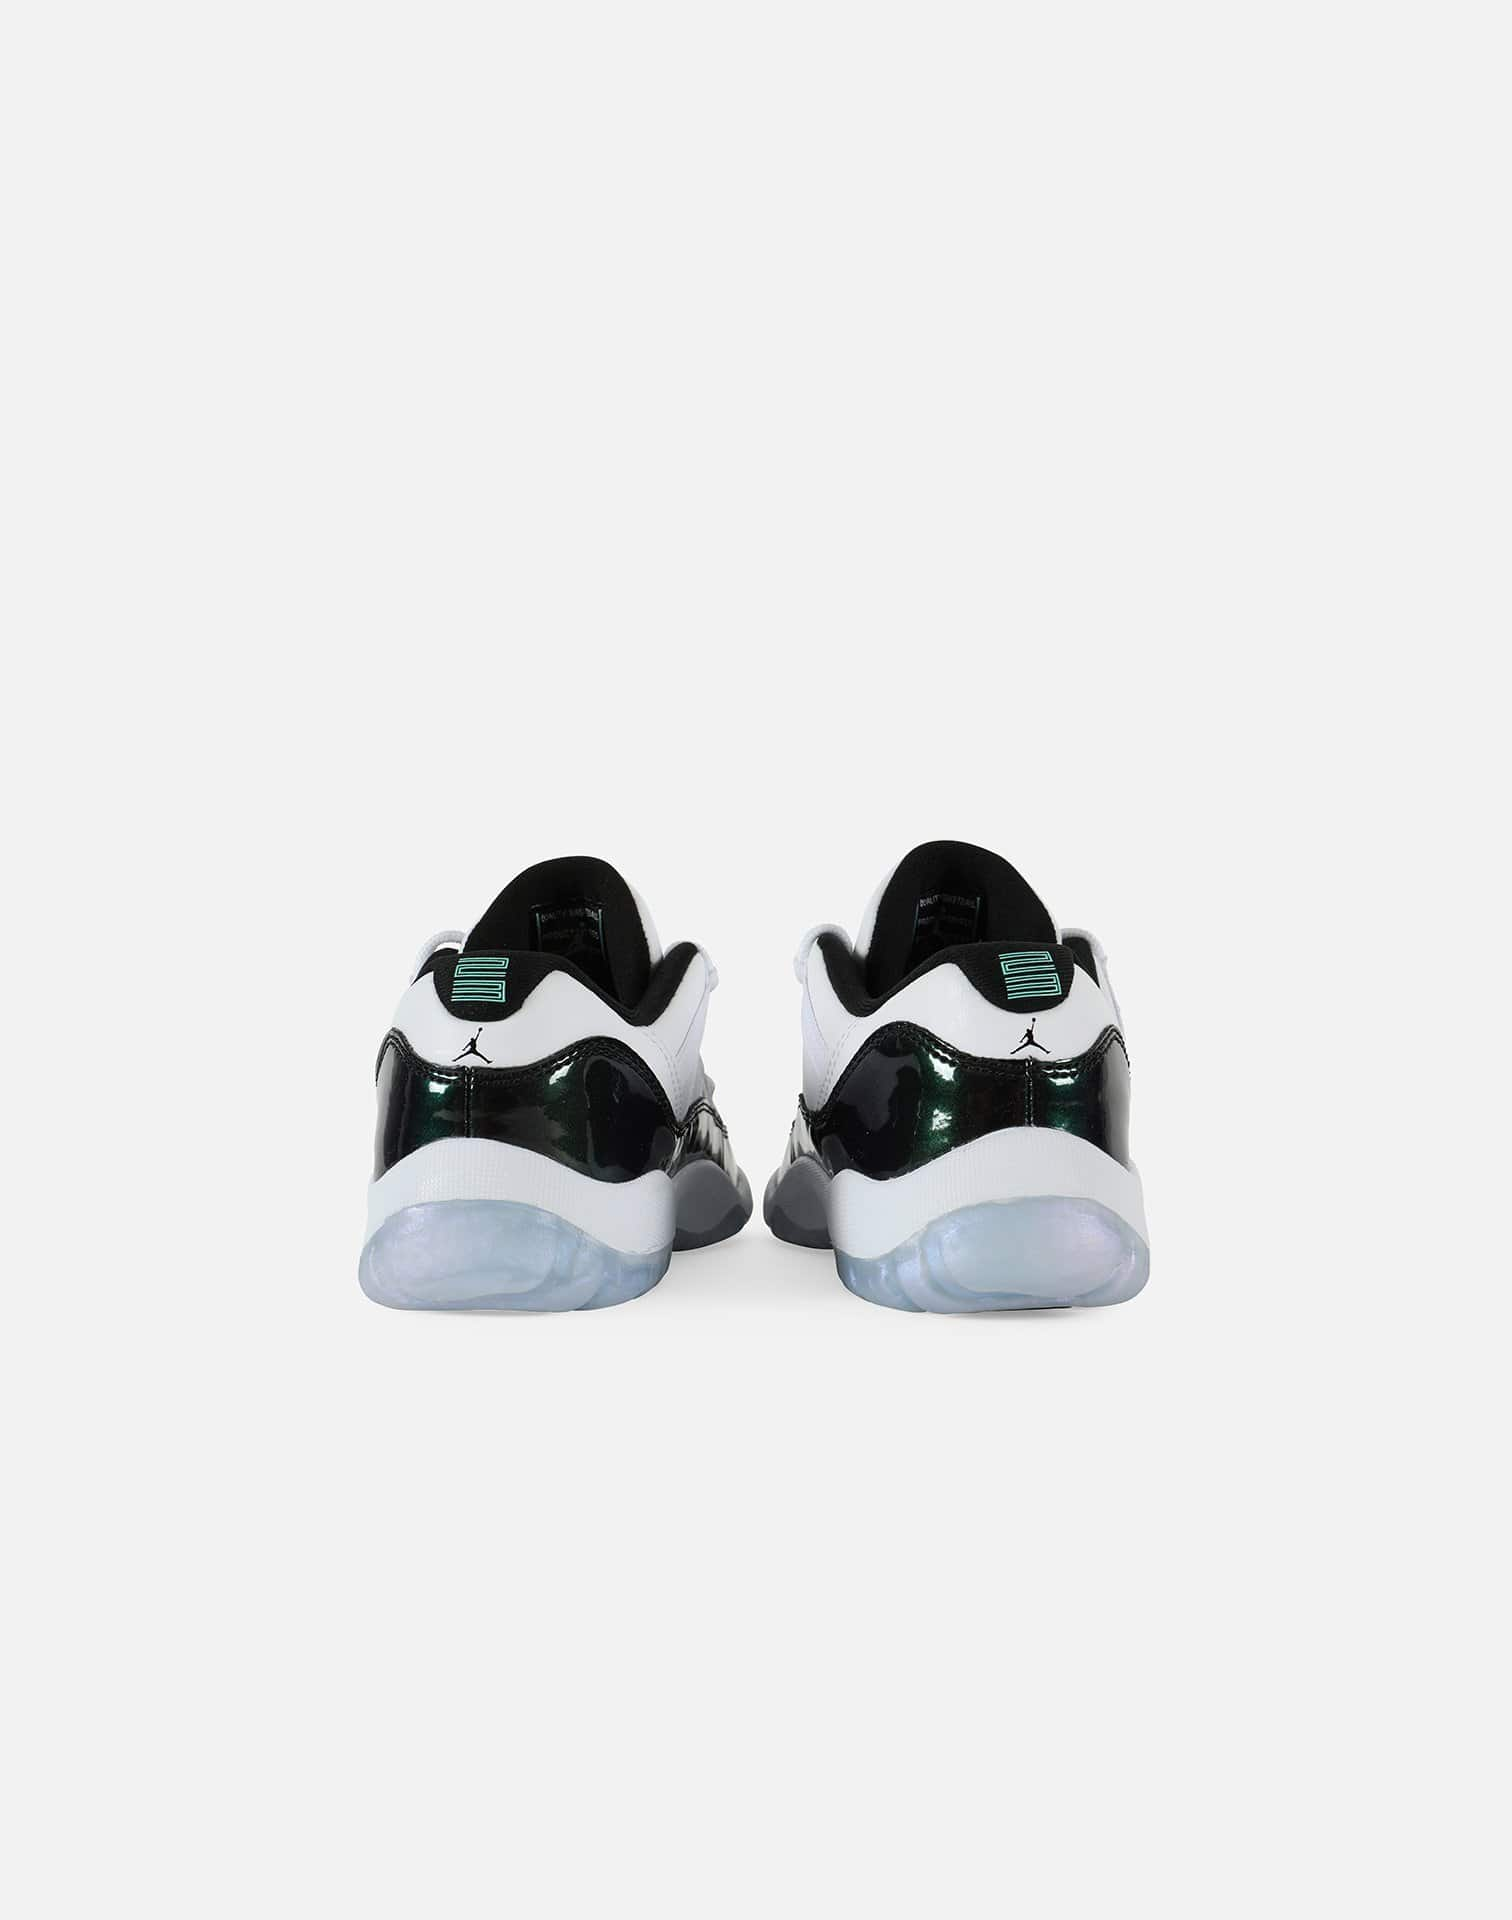 Jordan Air Jordan Retro 11 Low 'Iridescent' Pre-School